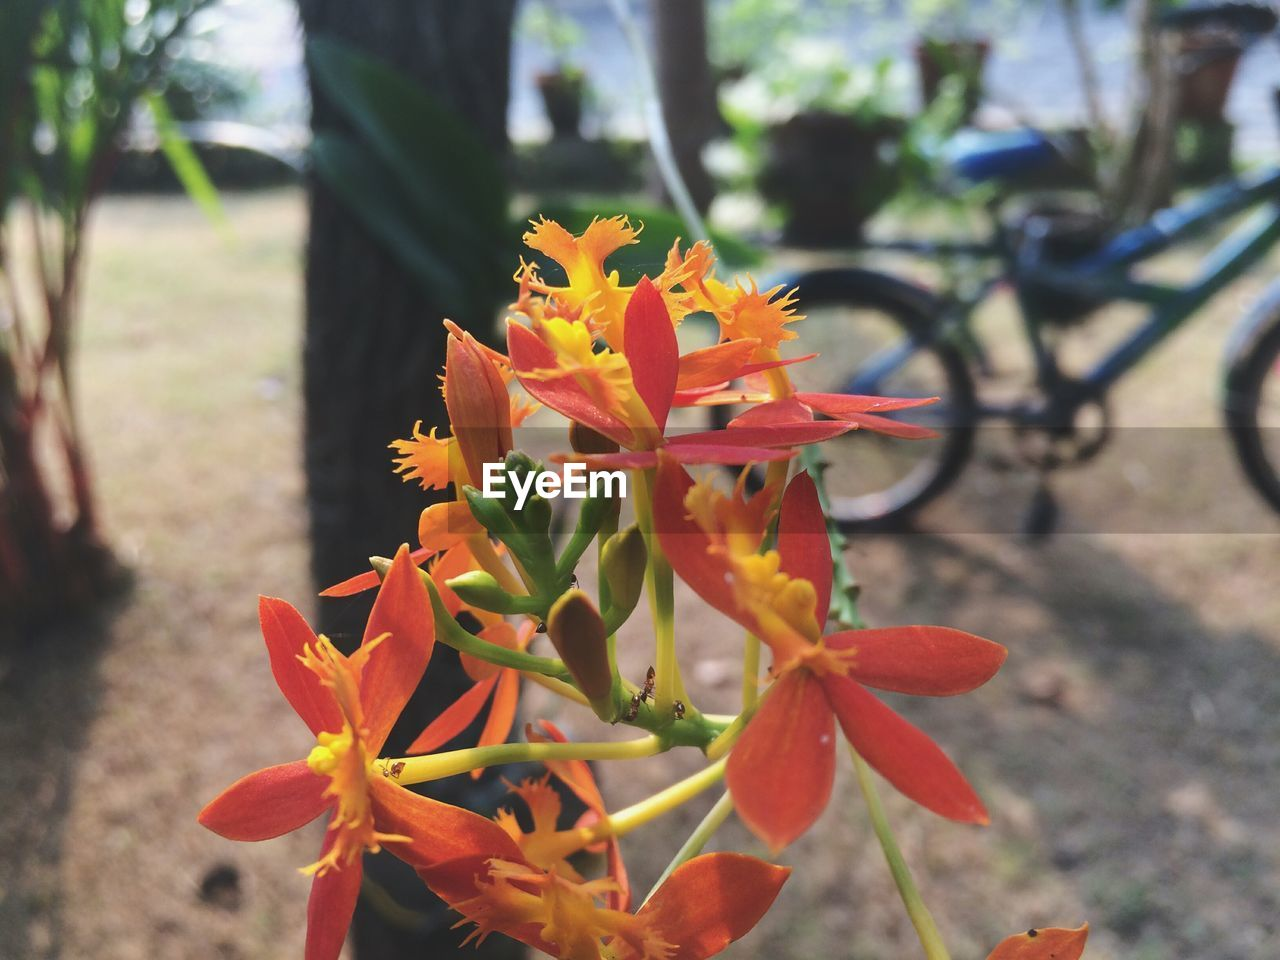 leaf, fragility, growth, nature, flower, day, outdoors, focus on foreground, beauty in nature, petal, close-up, flower head, autumn, plant, freshness, bicycle, no people, maple leaf